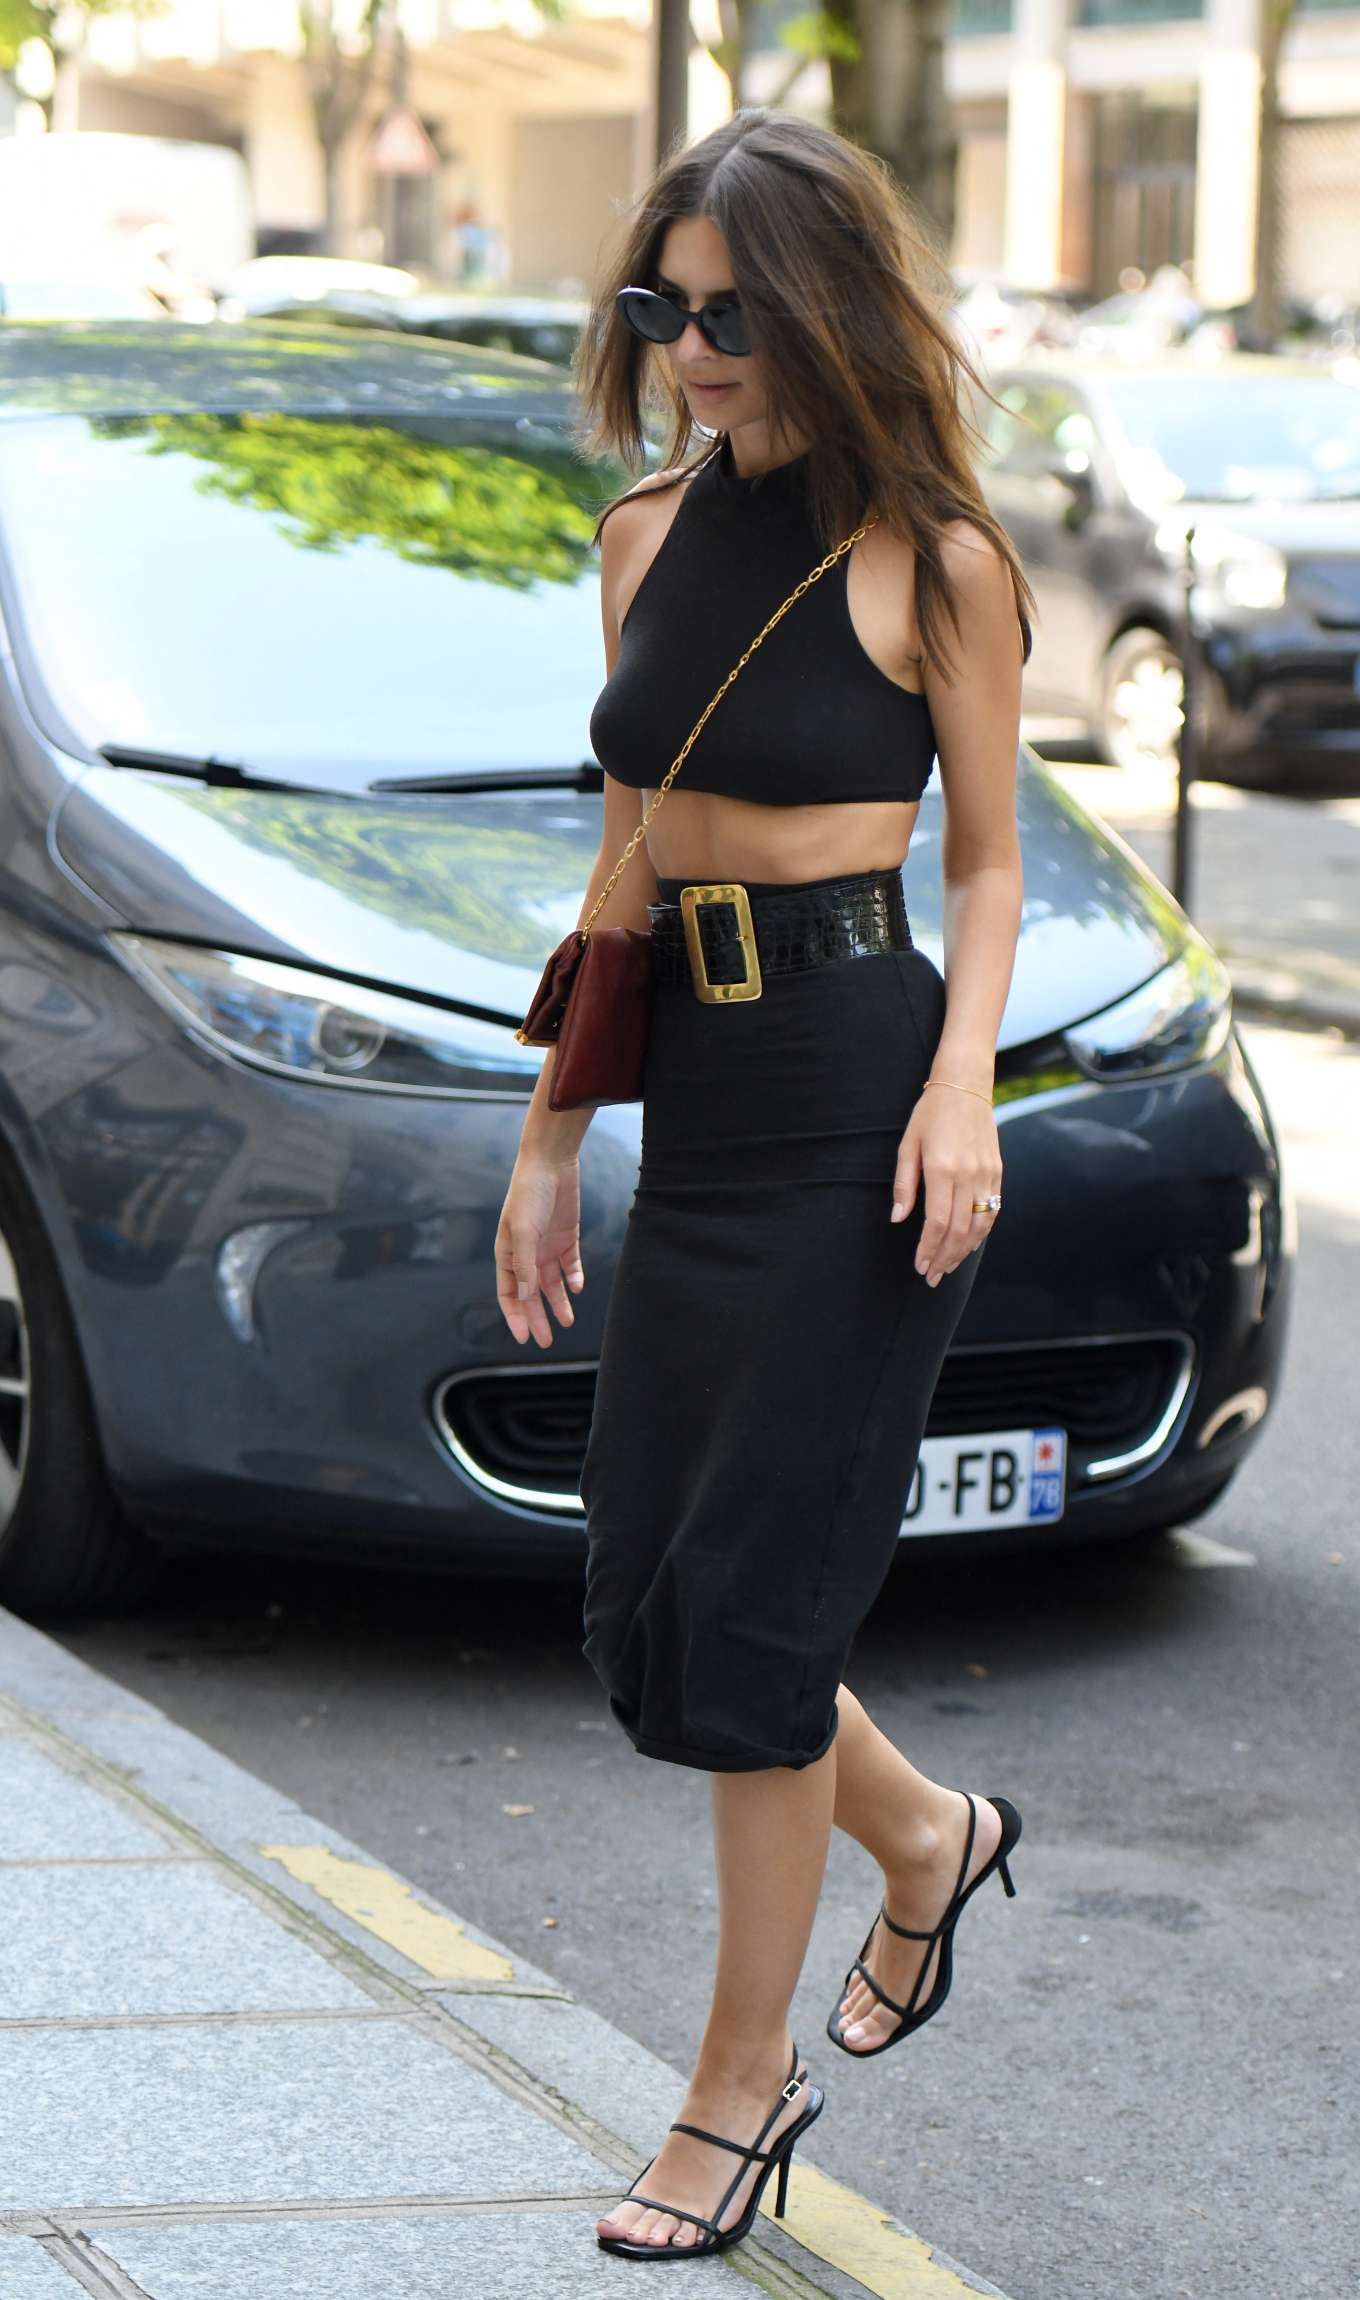 Emily Ratajkowski 2019 : Emily Ratajkowski: Arrives at Royal Monceau hotel-06